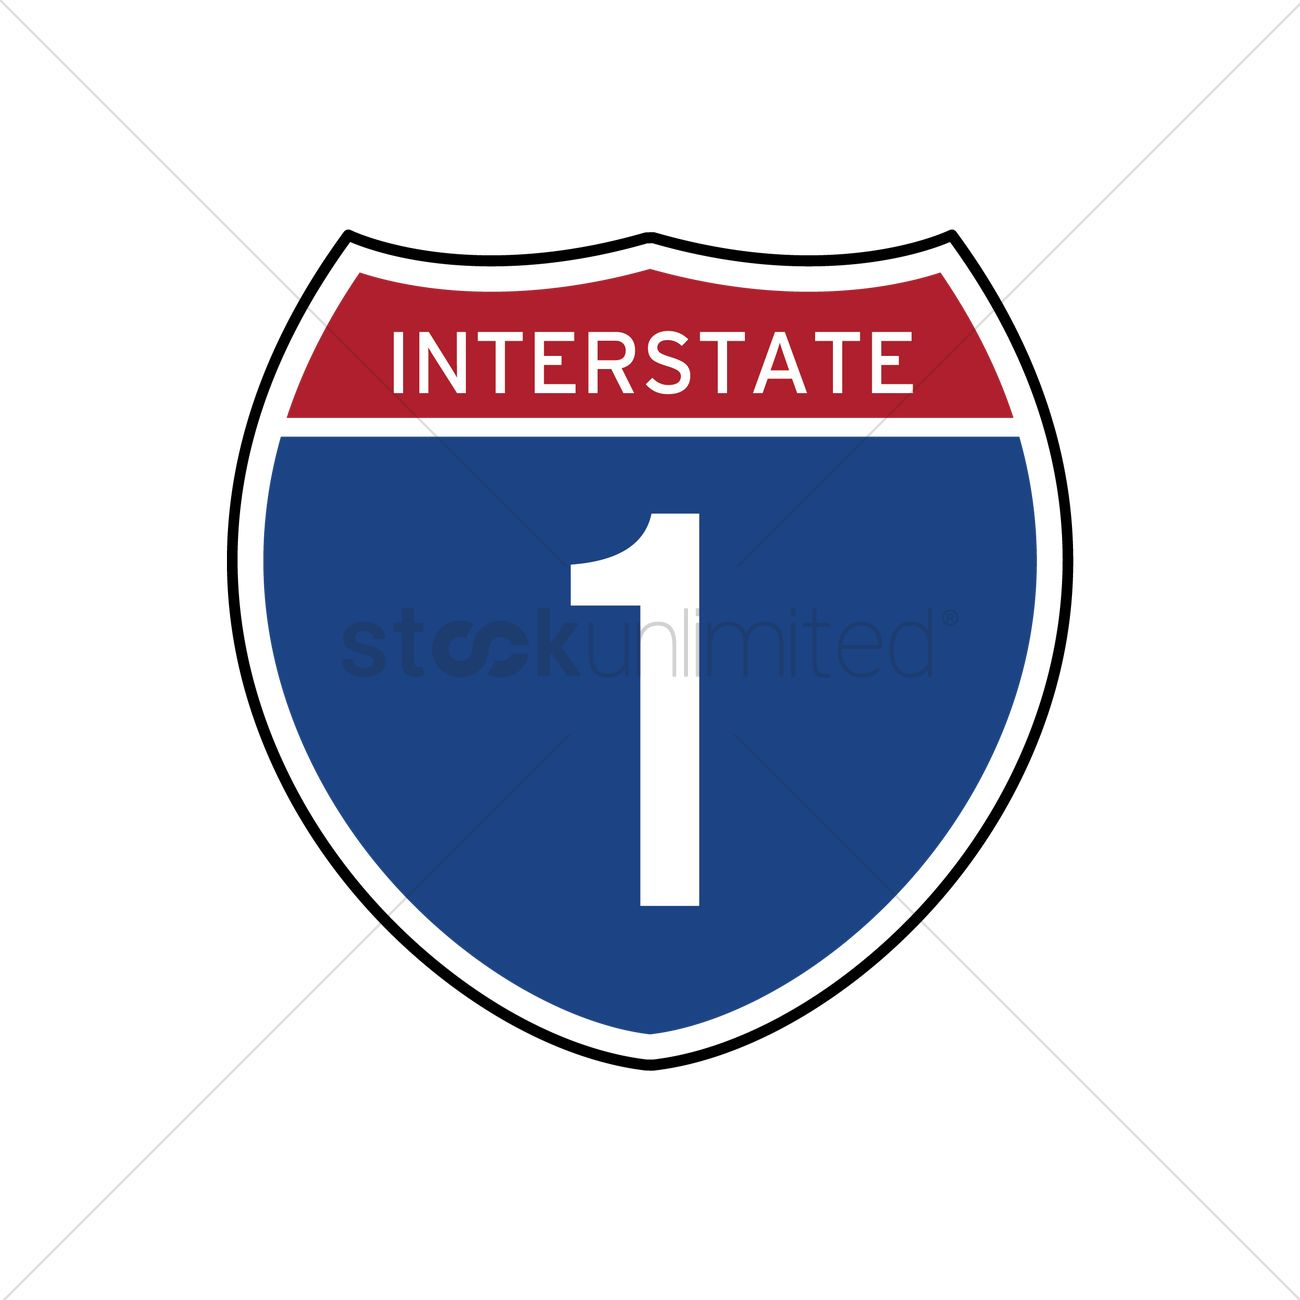 interstate 1 route sign vector image 1556101 stockunlimited rh stockunlimited com road sign vector vector signboard free download